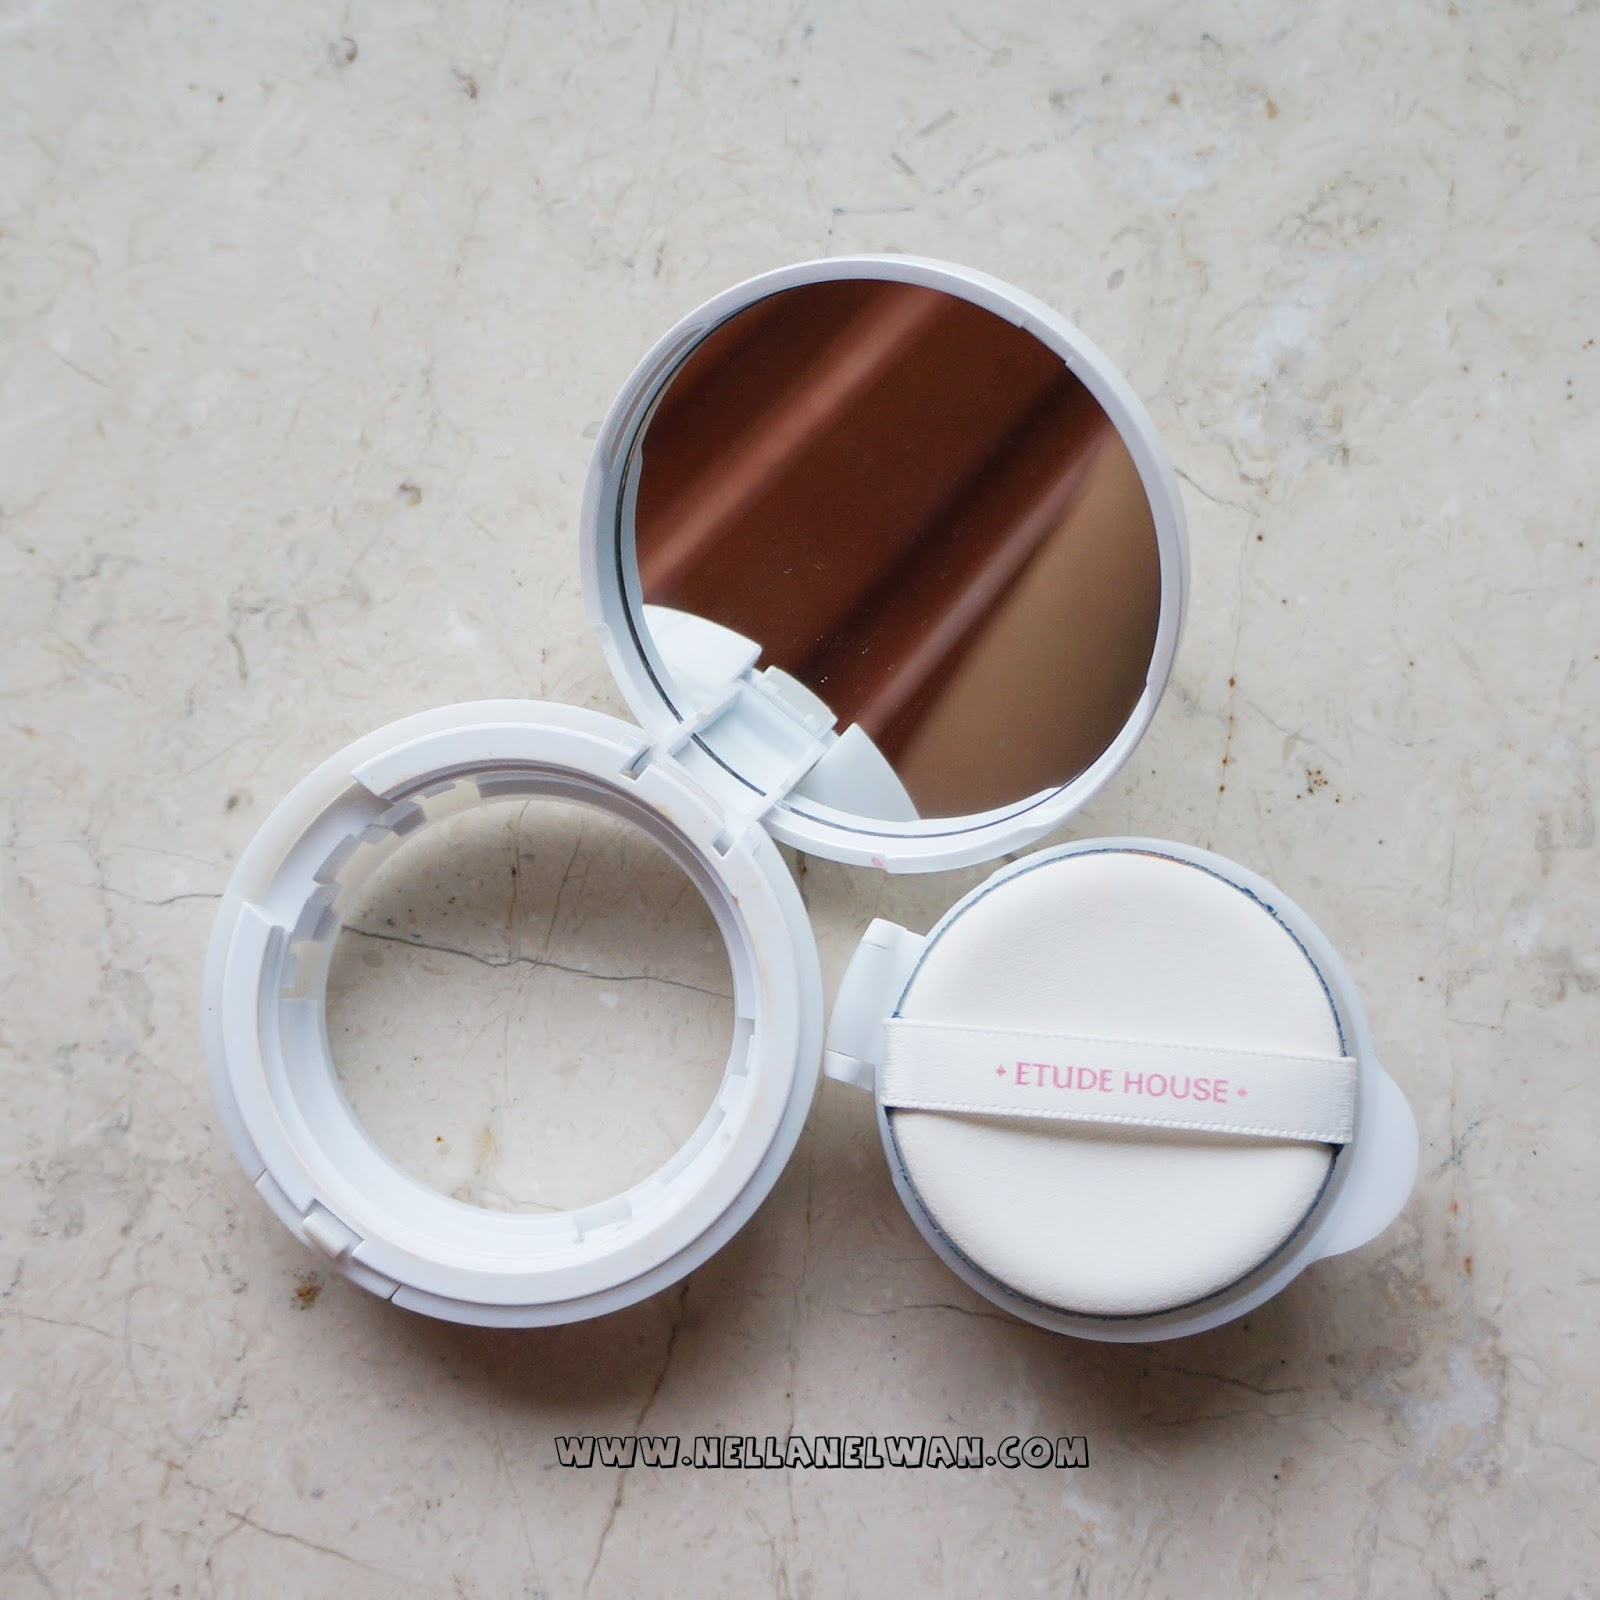 Bioaqua Cream Air Bb Cushion Review Natural Colour 01 Box Orange This Push Option Helps You To Pop Out The Whole Sponge Part Those Who Familiar With Cushions Know That Can Buy